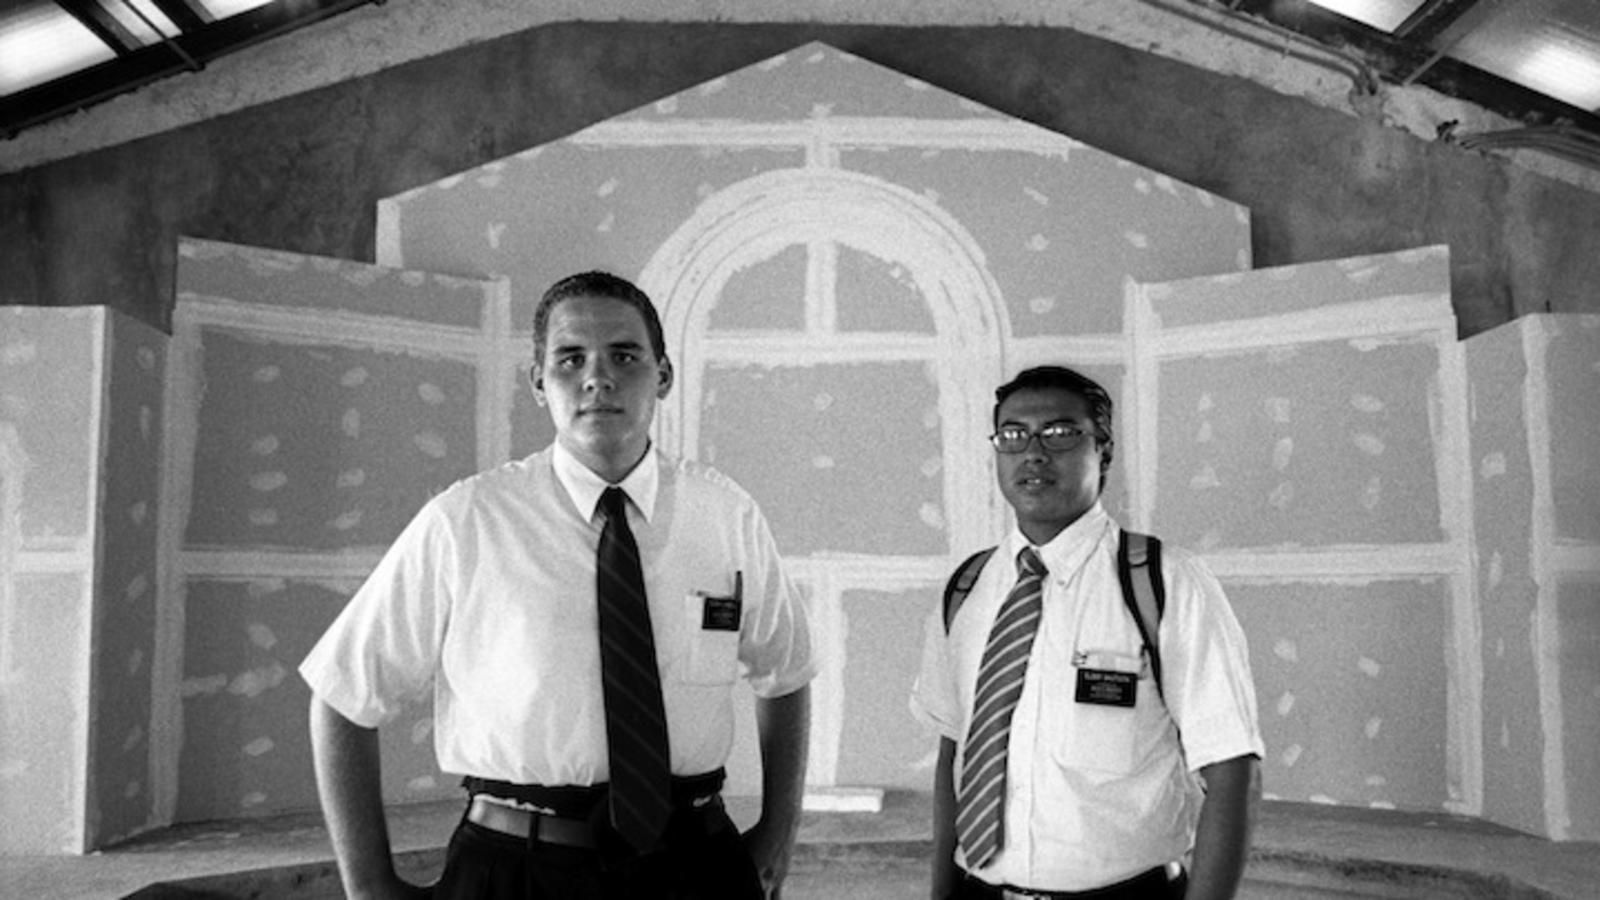 The Mormons photo series. Q&A with Photographer, Mark Hedengren